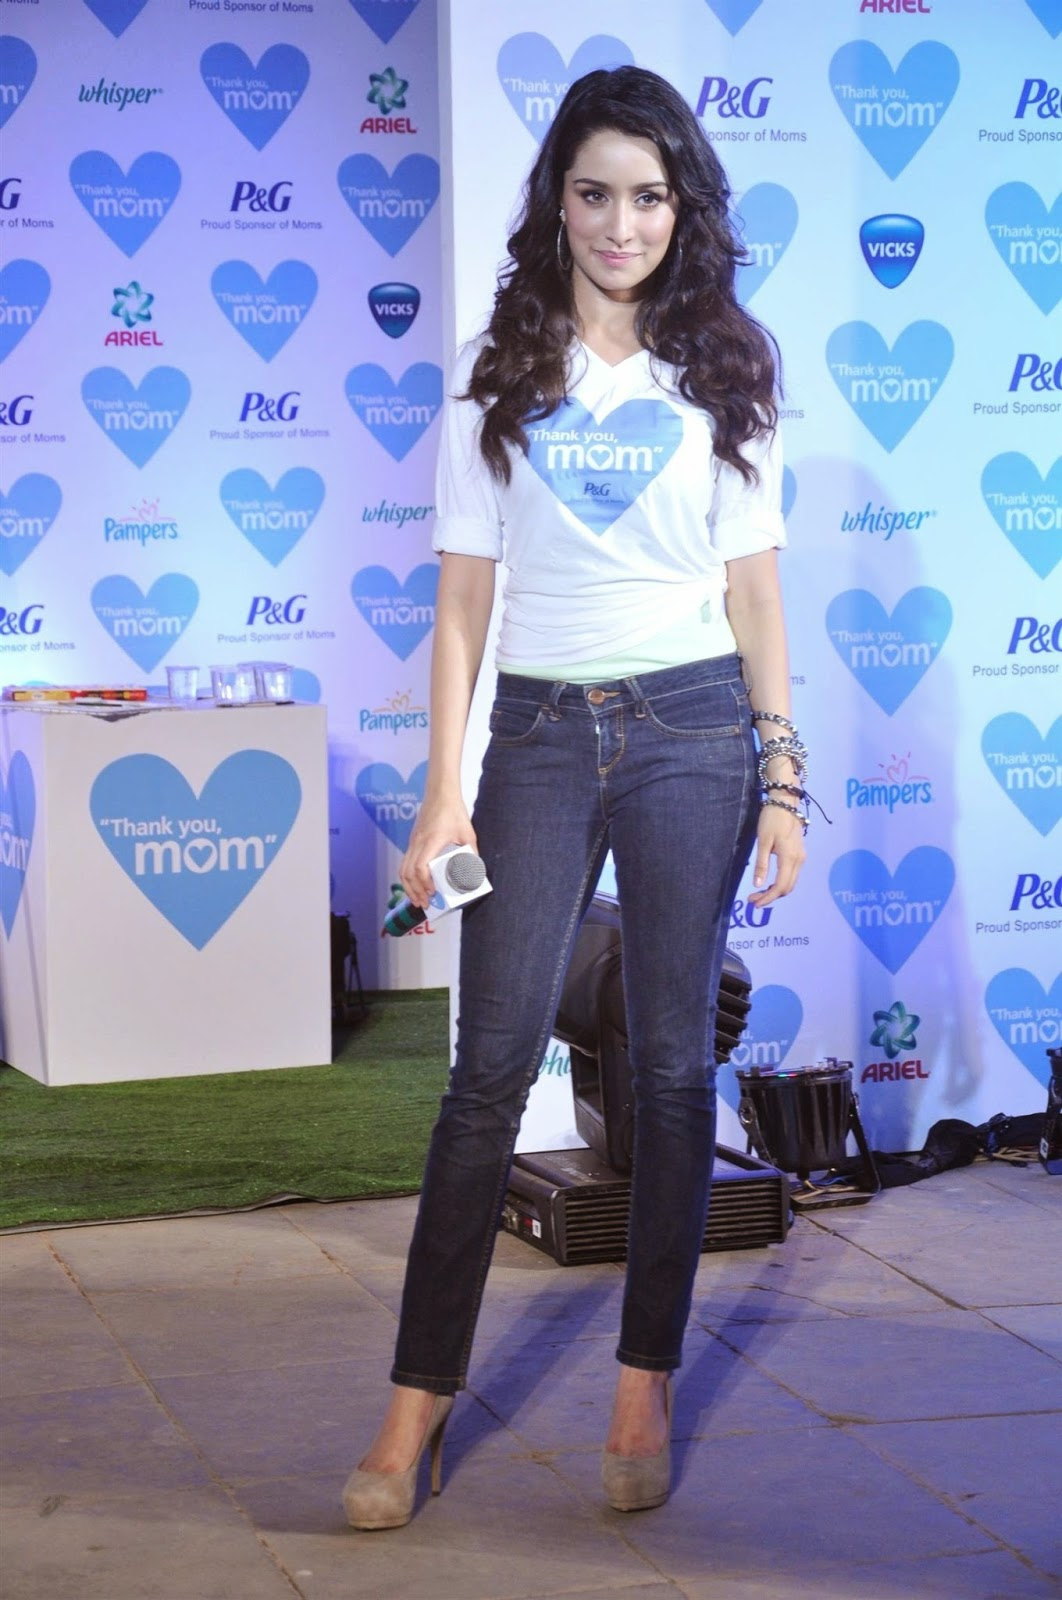 Shraddha Kapoor at P&G thank you mom event in Bandra